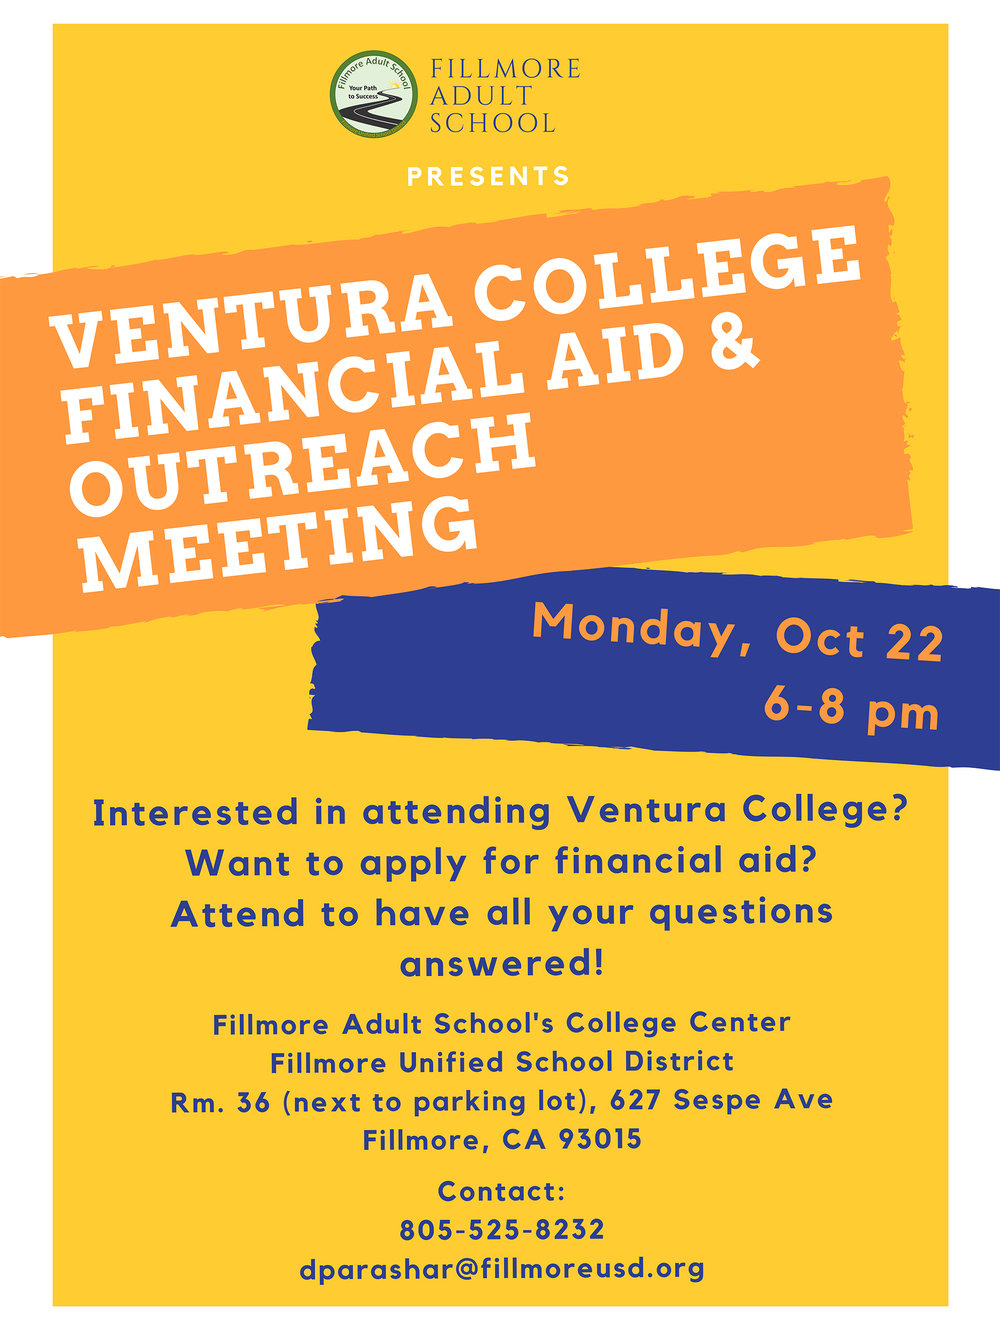 VC-oct-22-meeting-flyer.jpg